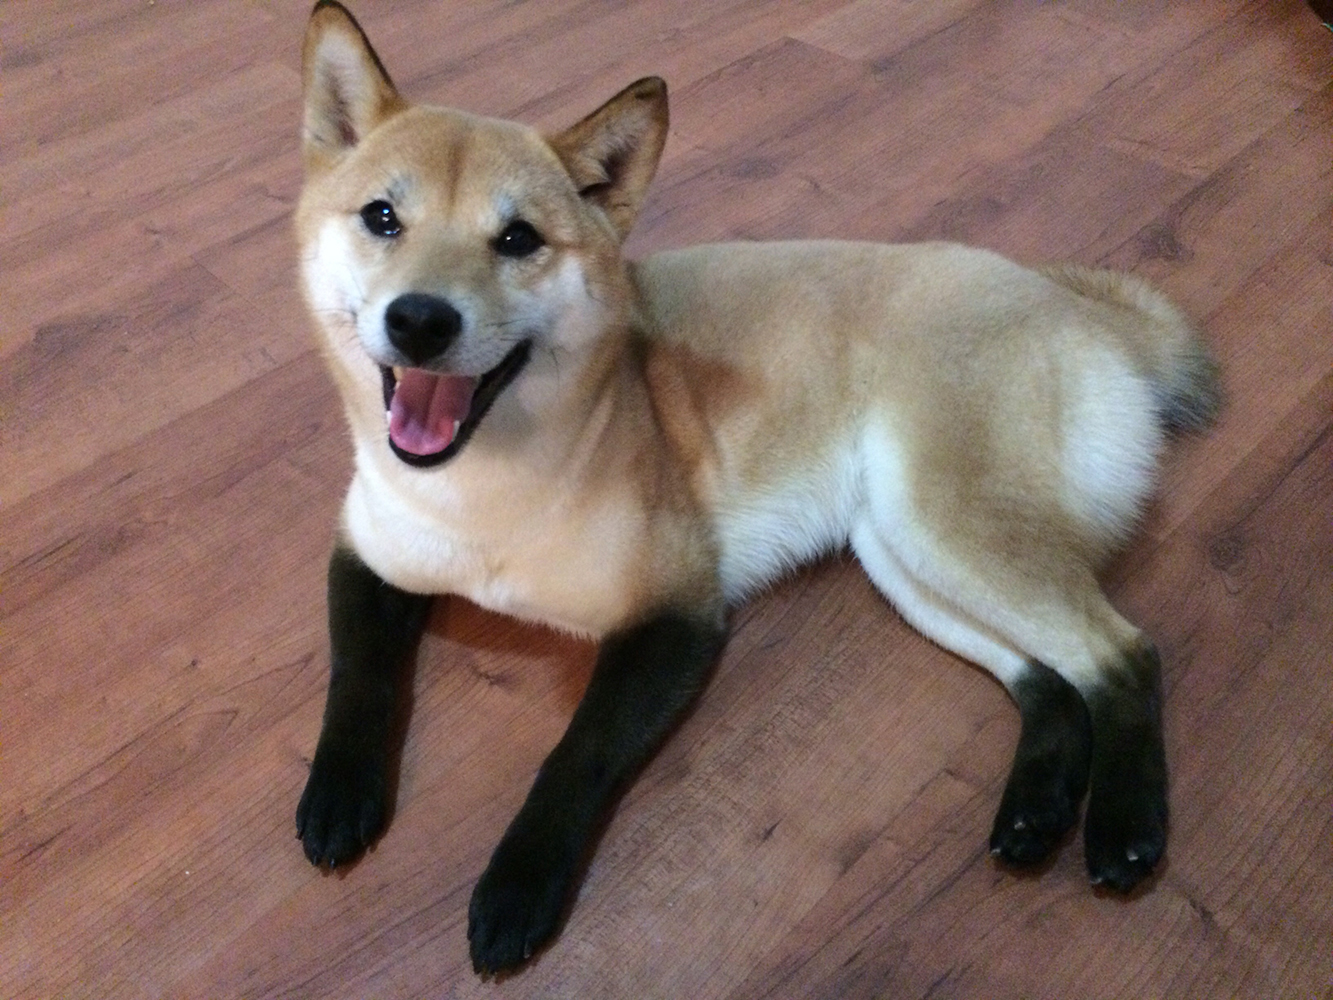 Today we feature a Shiba Inu